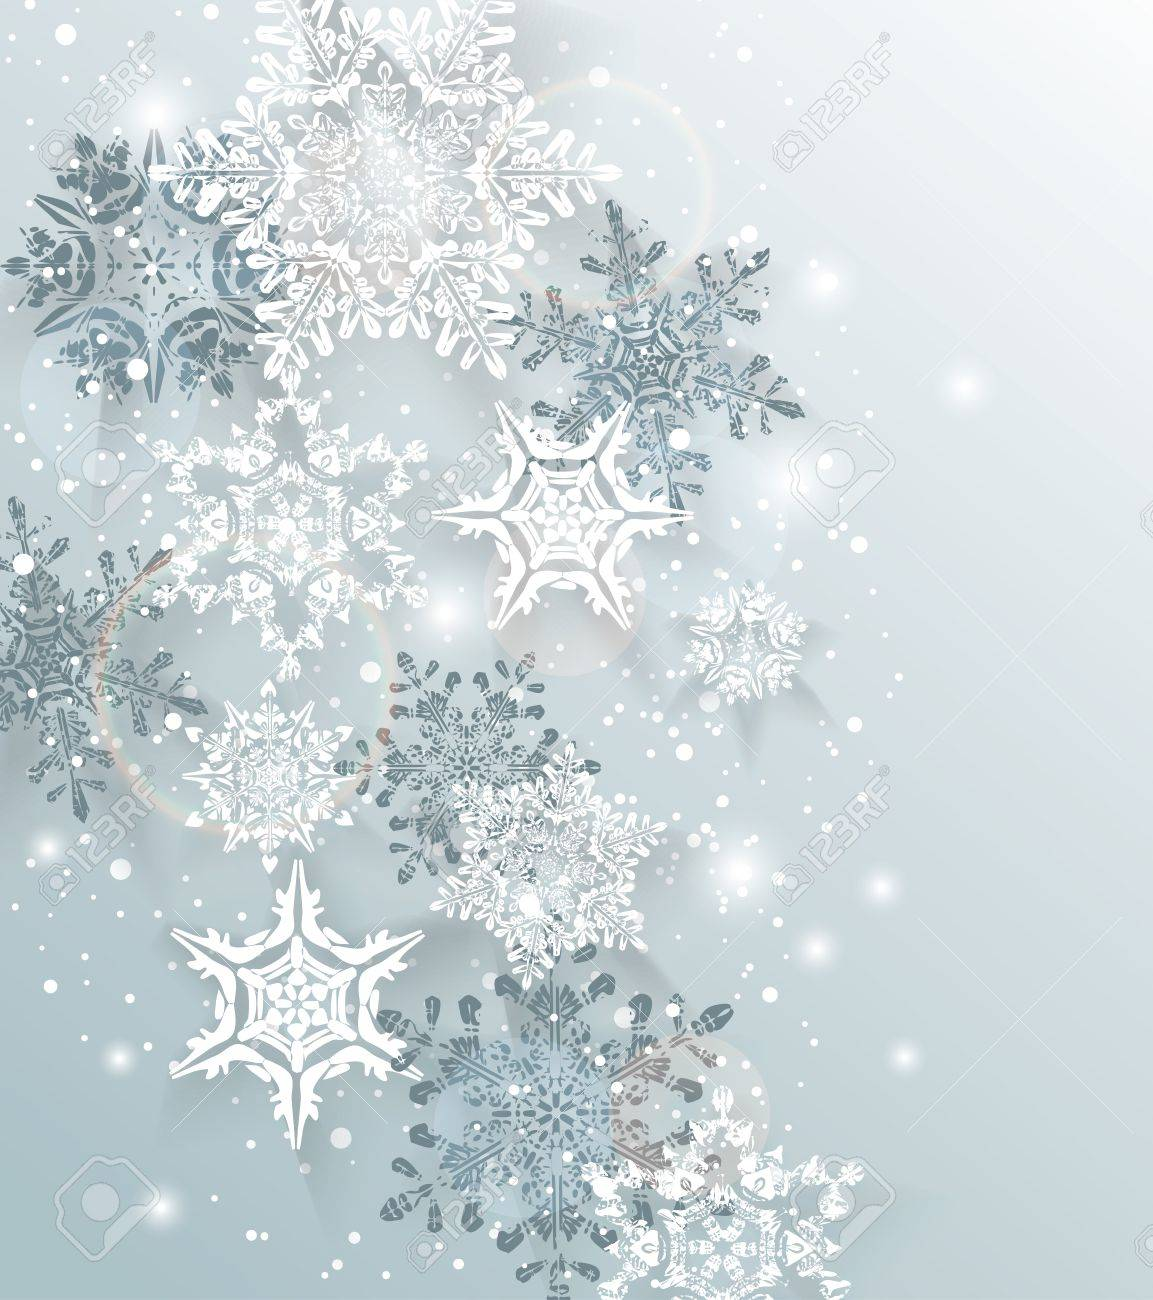 Silver Winter Abstract Christmas BackgroundVector Illustration 1153x1300